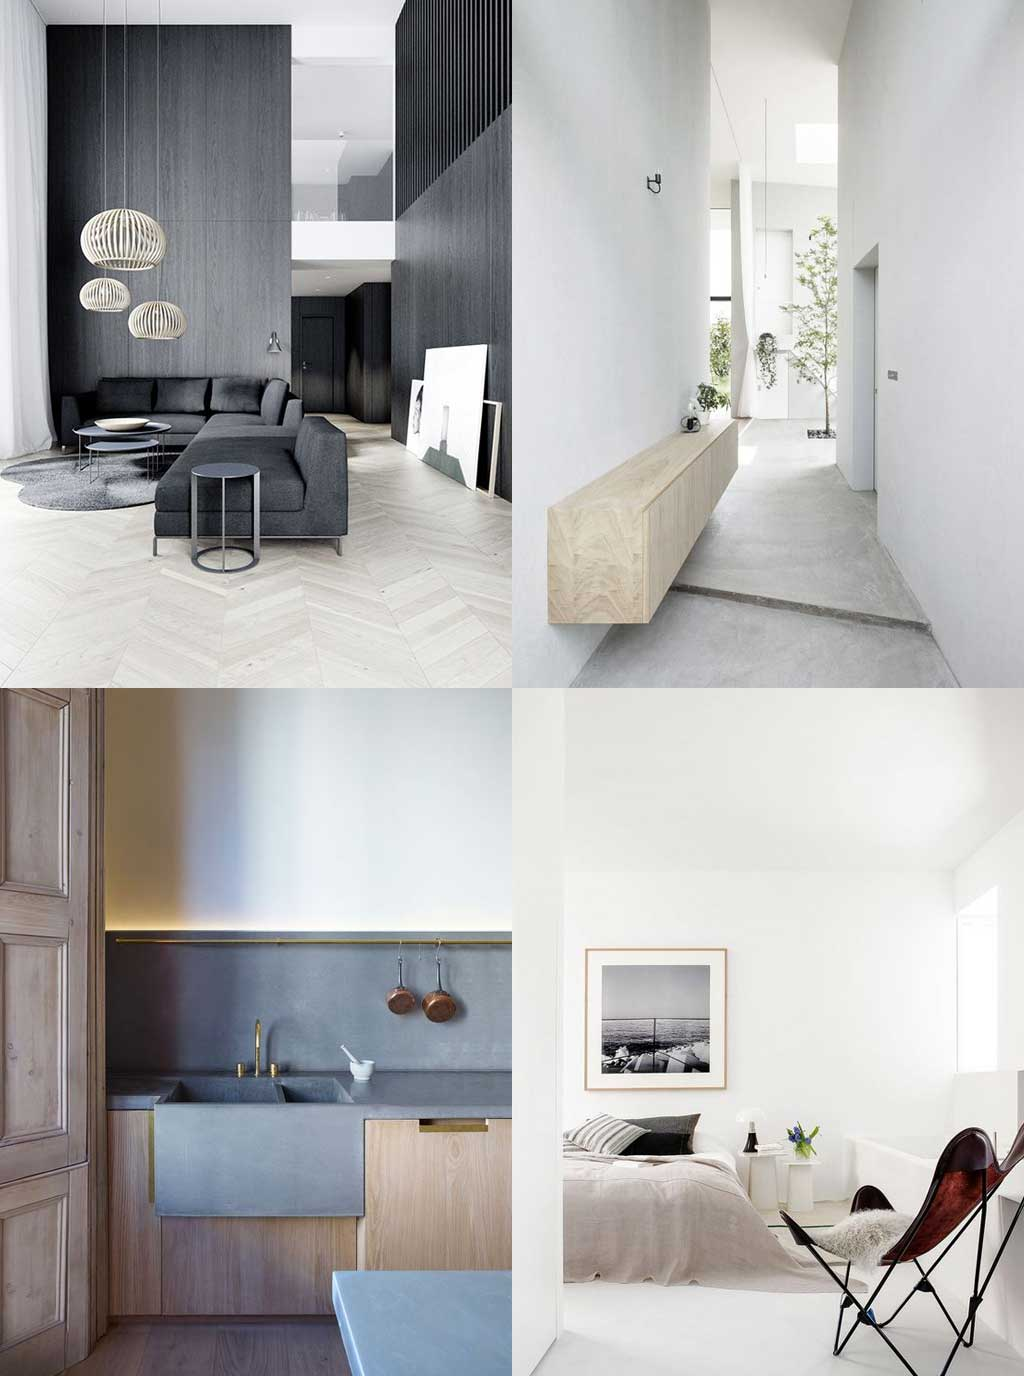 Interior Space Design interior space design ~ instainteriordesign